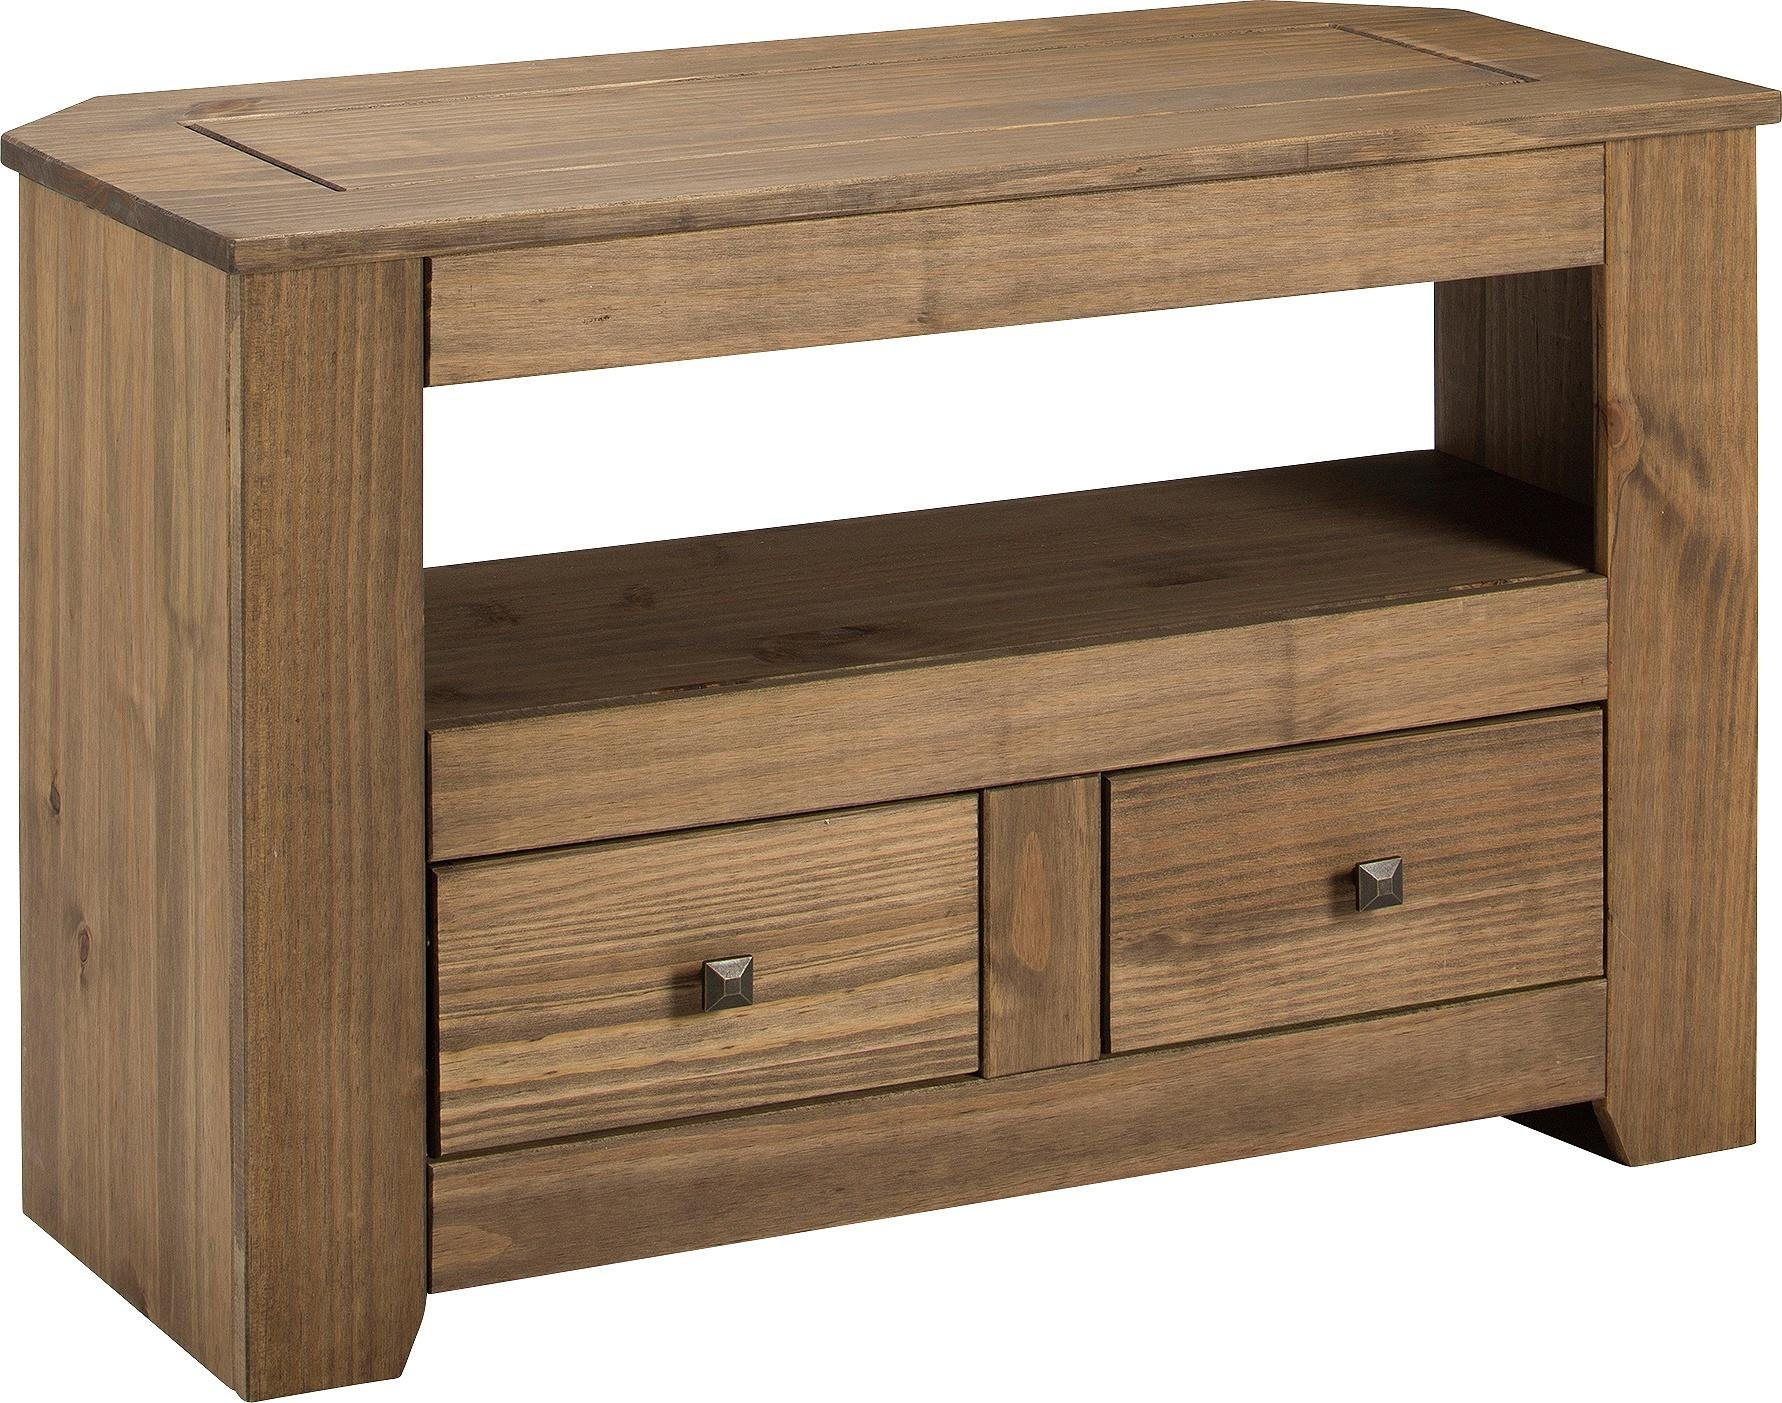 Argos Home Amersham 2 Drawer Solid Wood TV Unit - Dark Pine